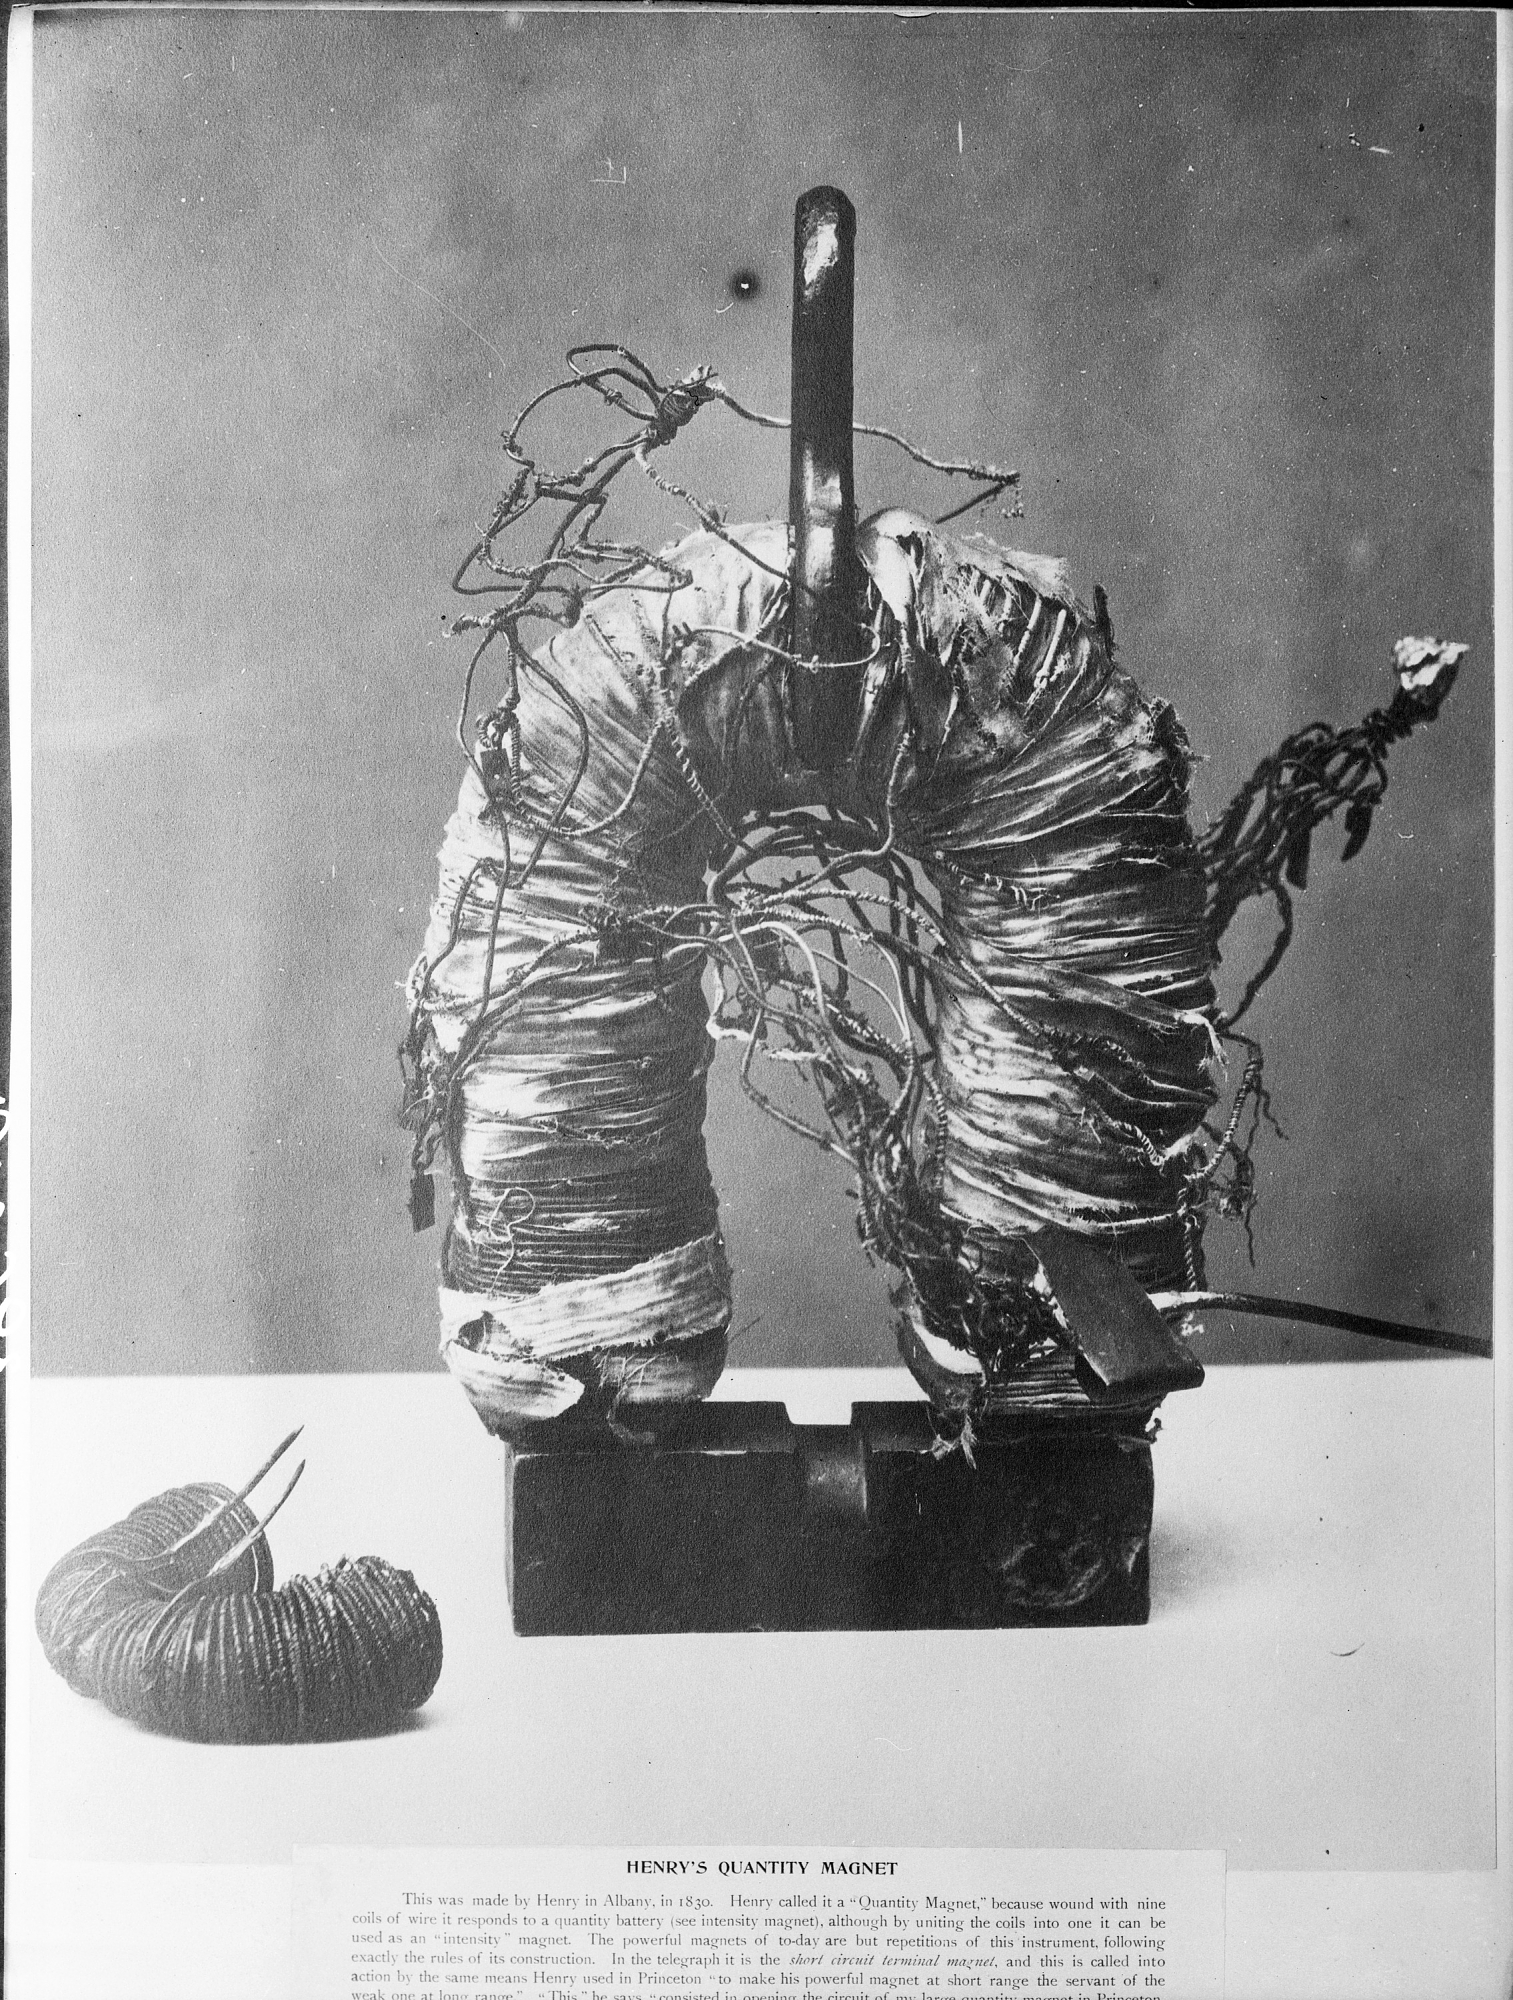 Joseph Henry's electromagnet, created by wrapping an iron bar in insulating conductive wire. Courtesy of the Smithsonian Institution Archives.